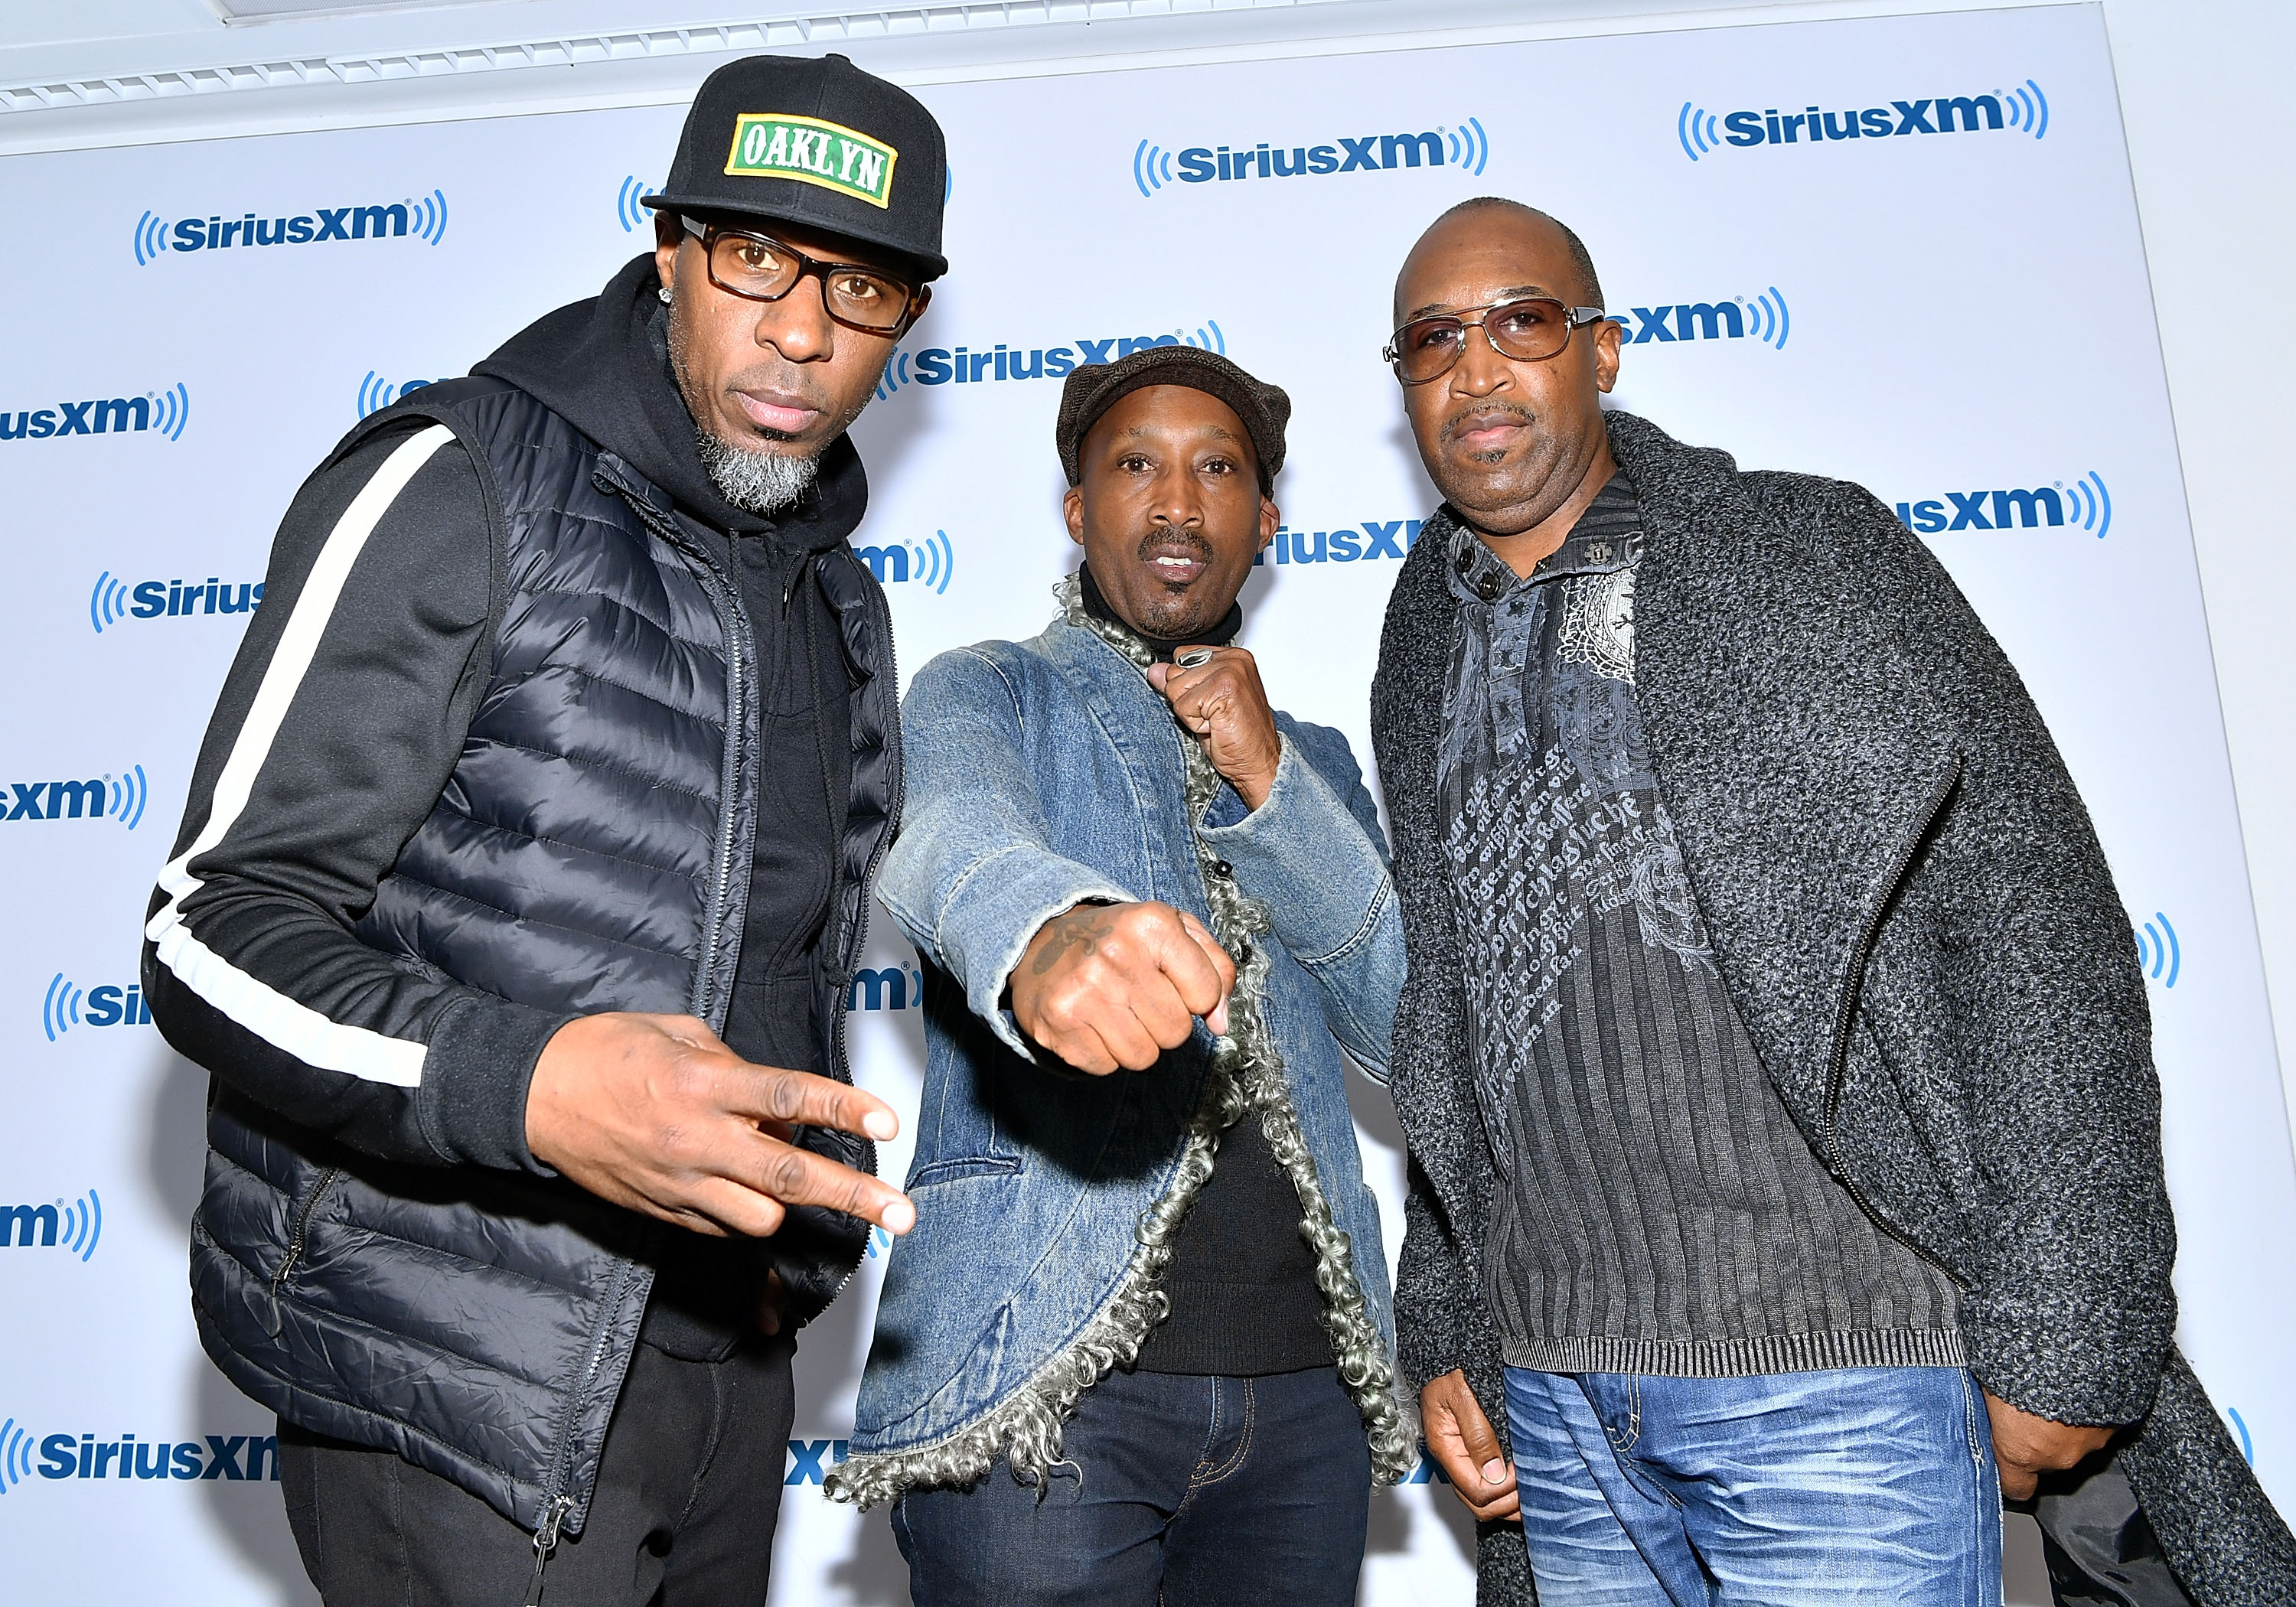 Celebrities Visit SiriusXM - January 30, 2017